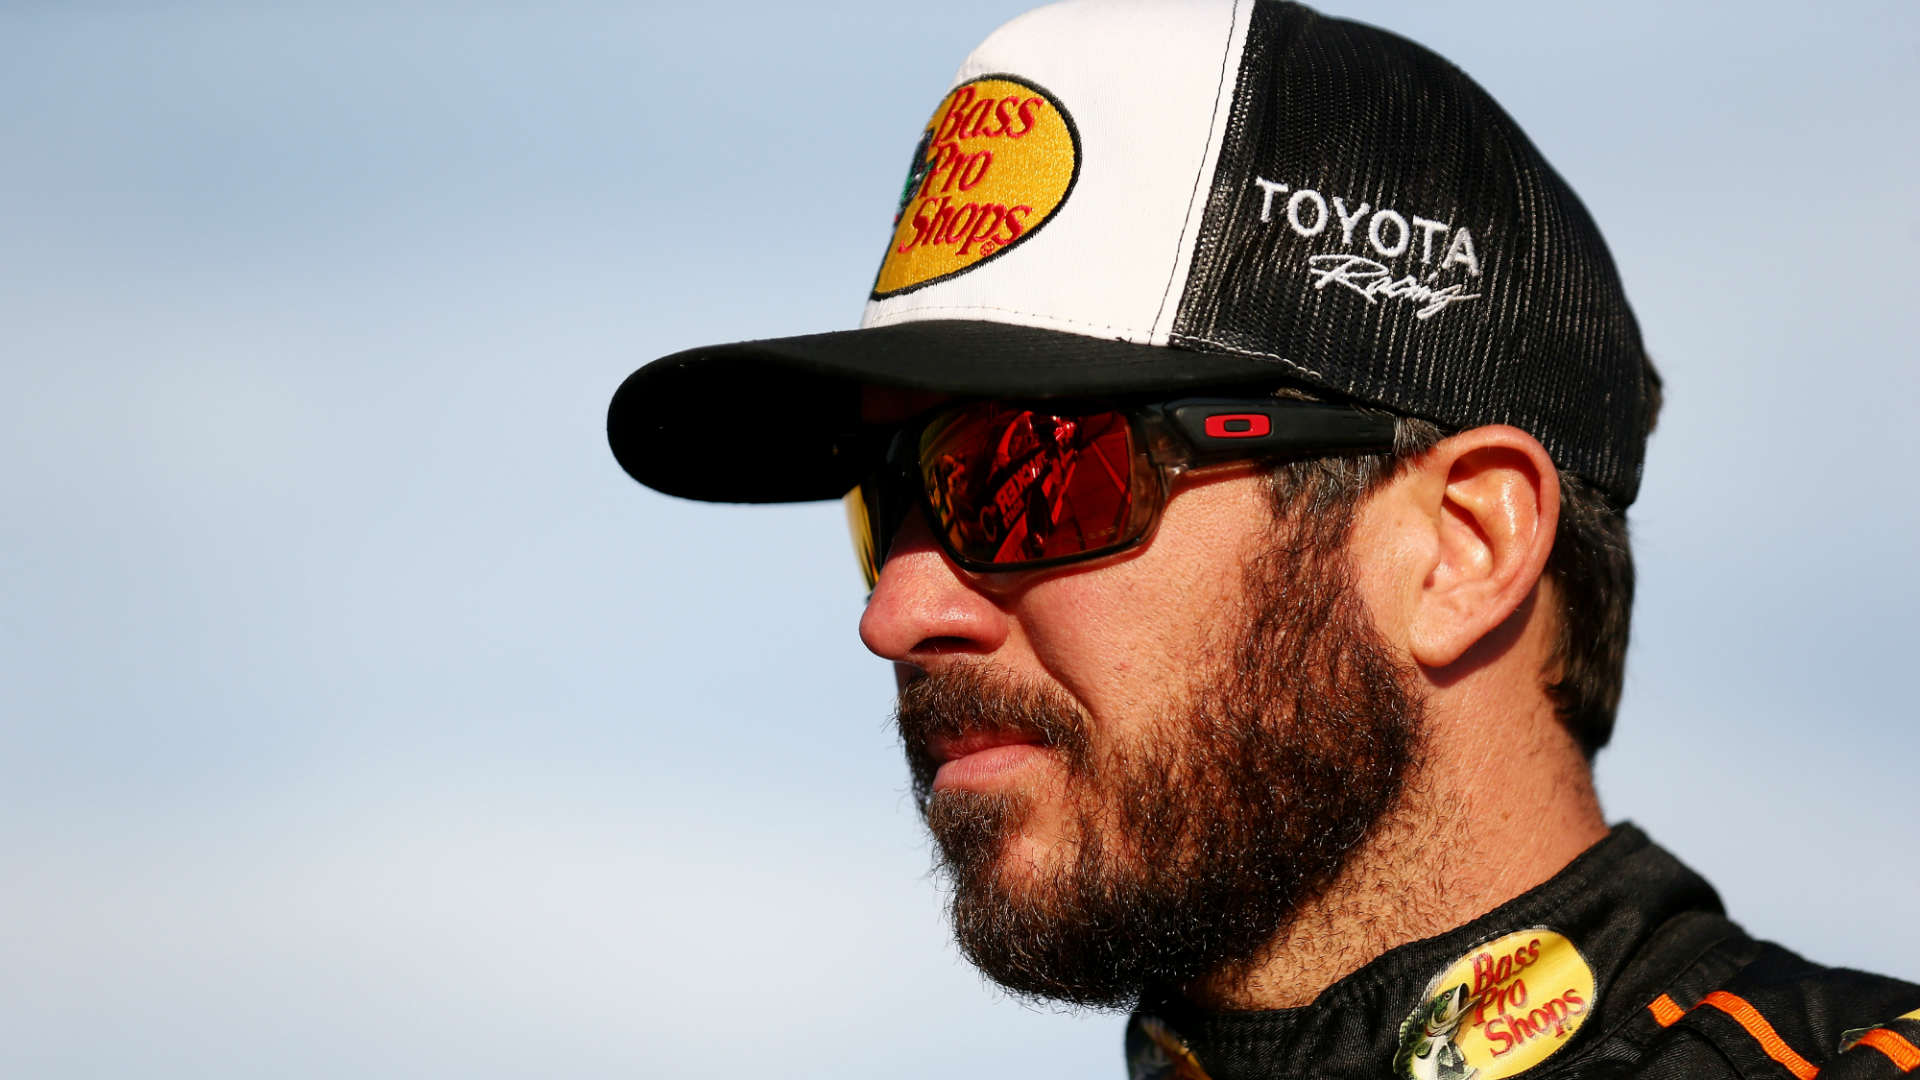 NASCAR at Chicago: Start time, lineup, TV schedule, live stream for Camping World 400